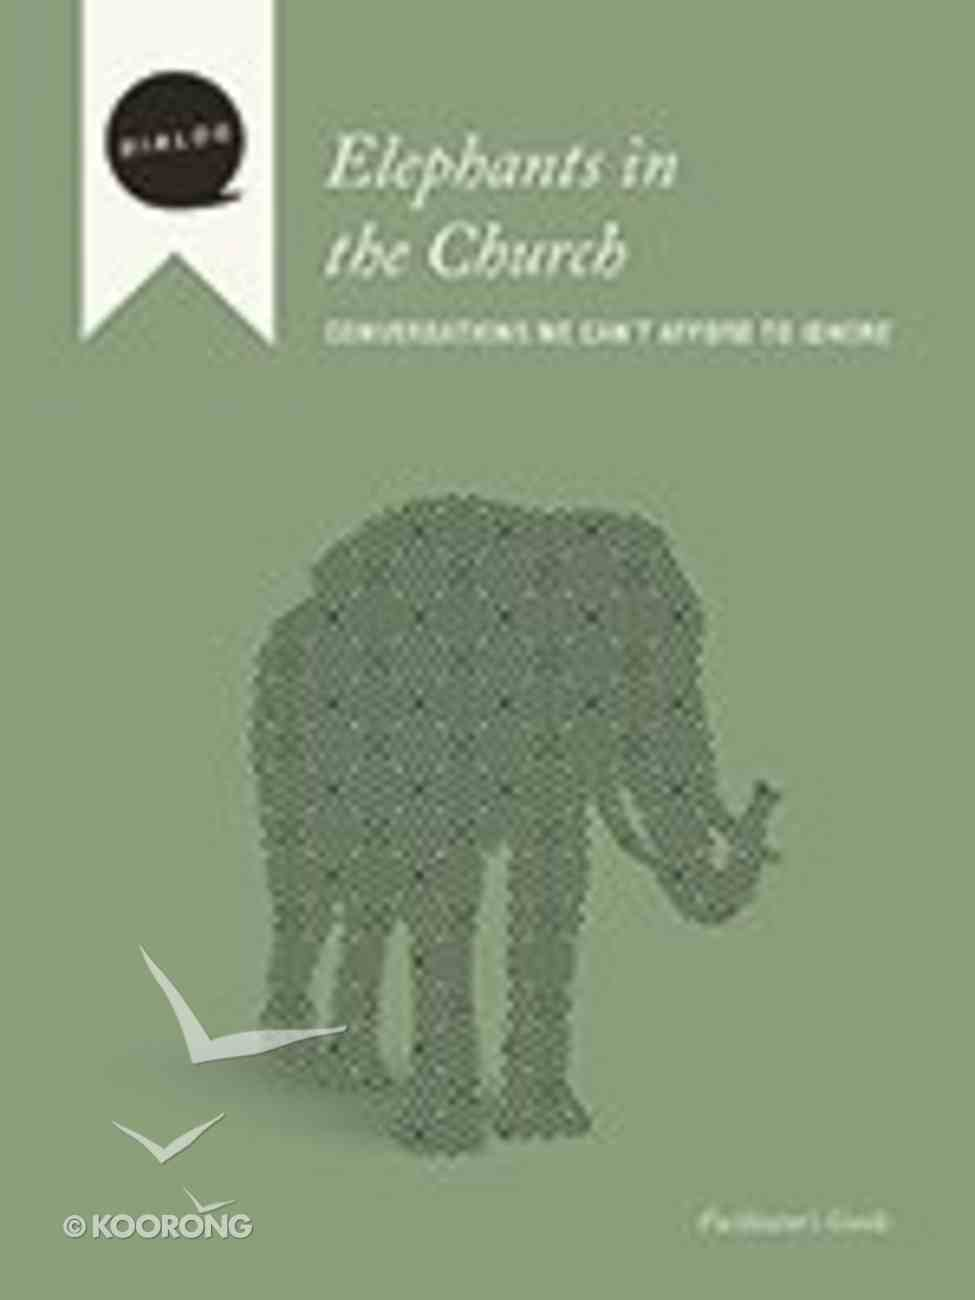 Elephants in the Church (Facilitator's Guide) (Dialog Study Series) Paperback